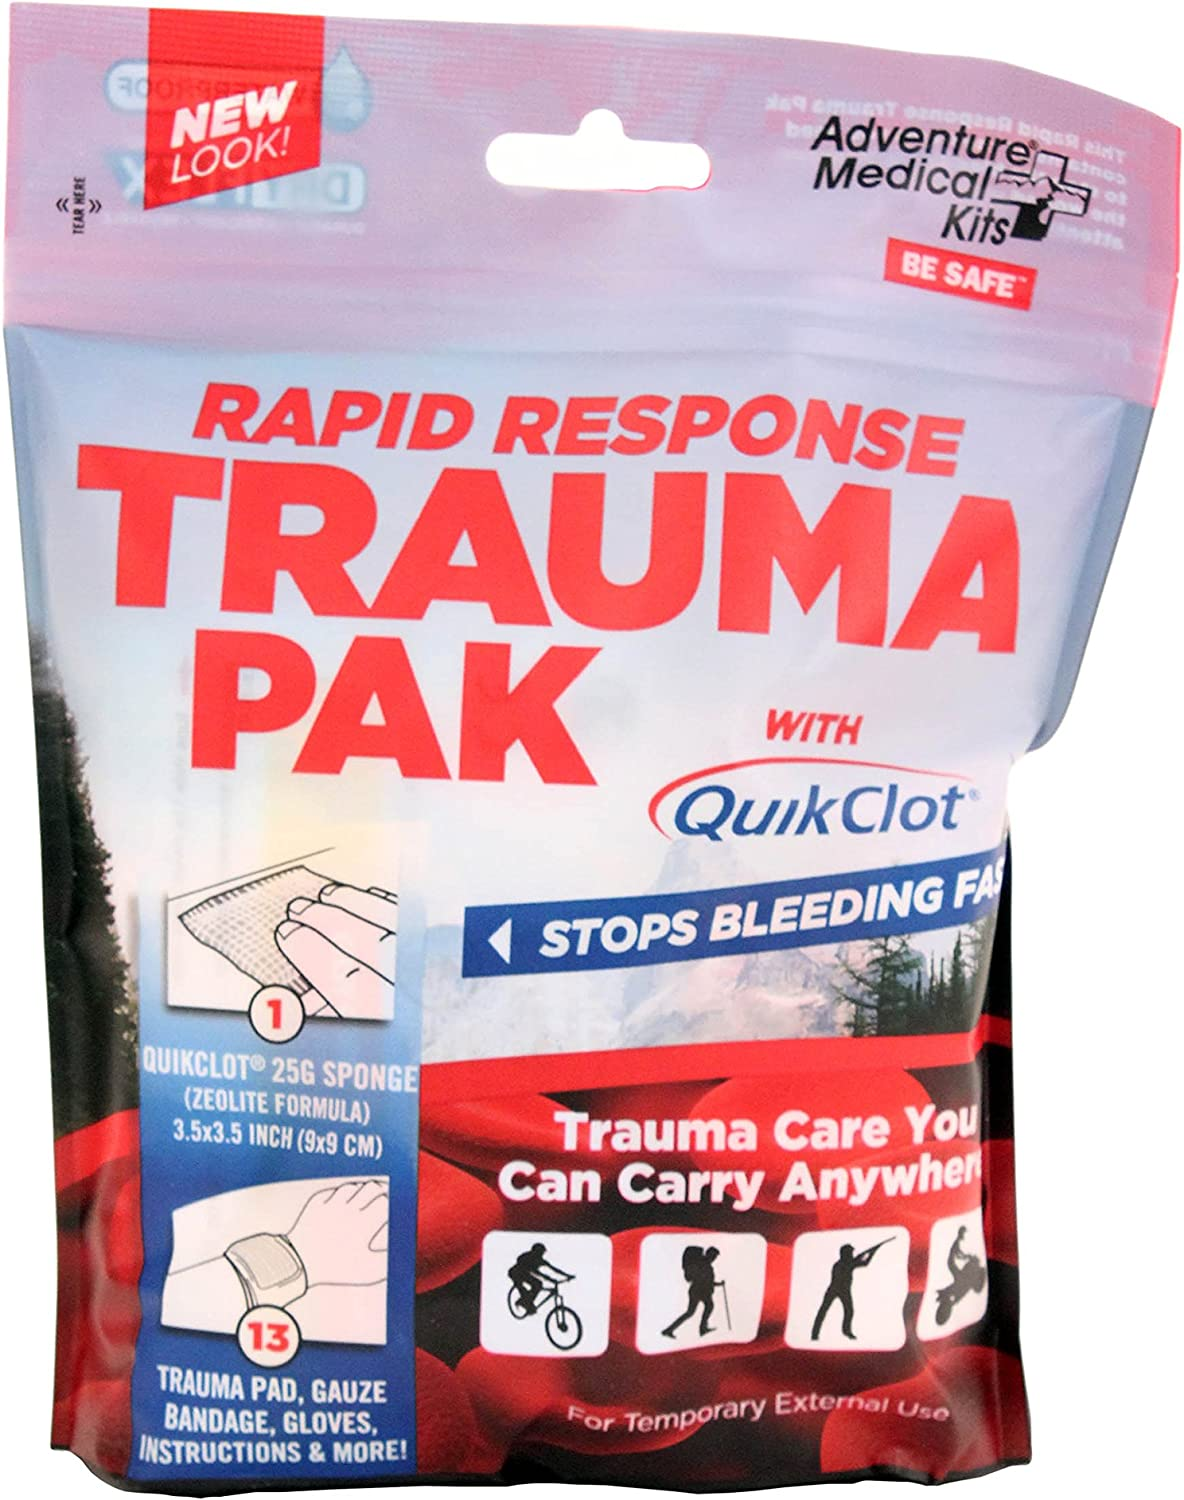 Adventure Medical Kits Selling rankings Rapid Response with QuikClot Pack 2021 Trauma